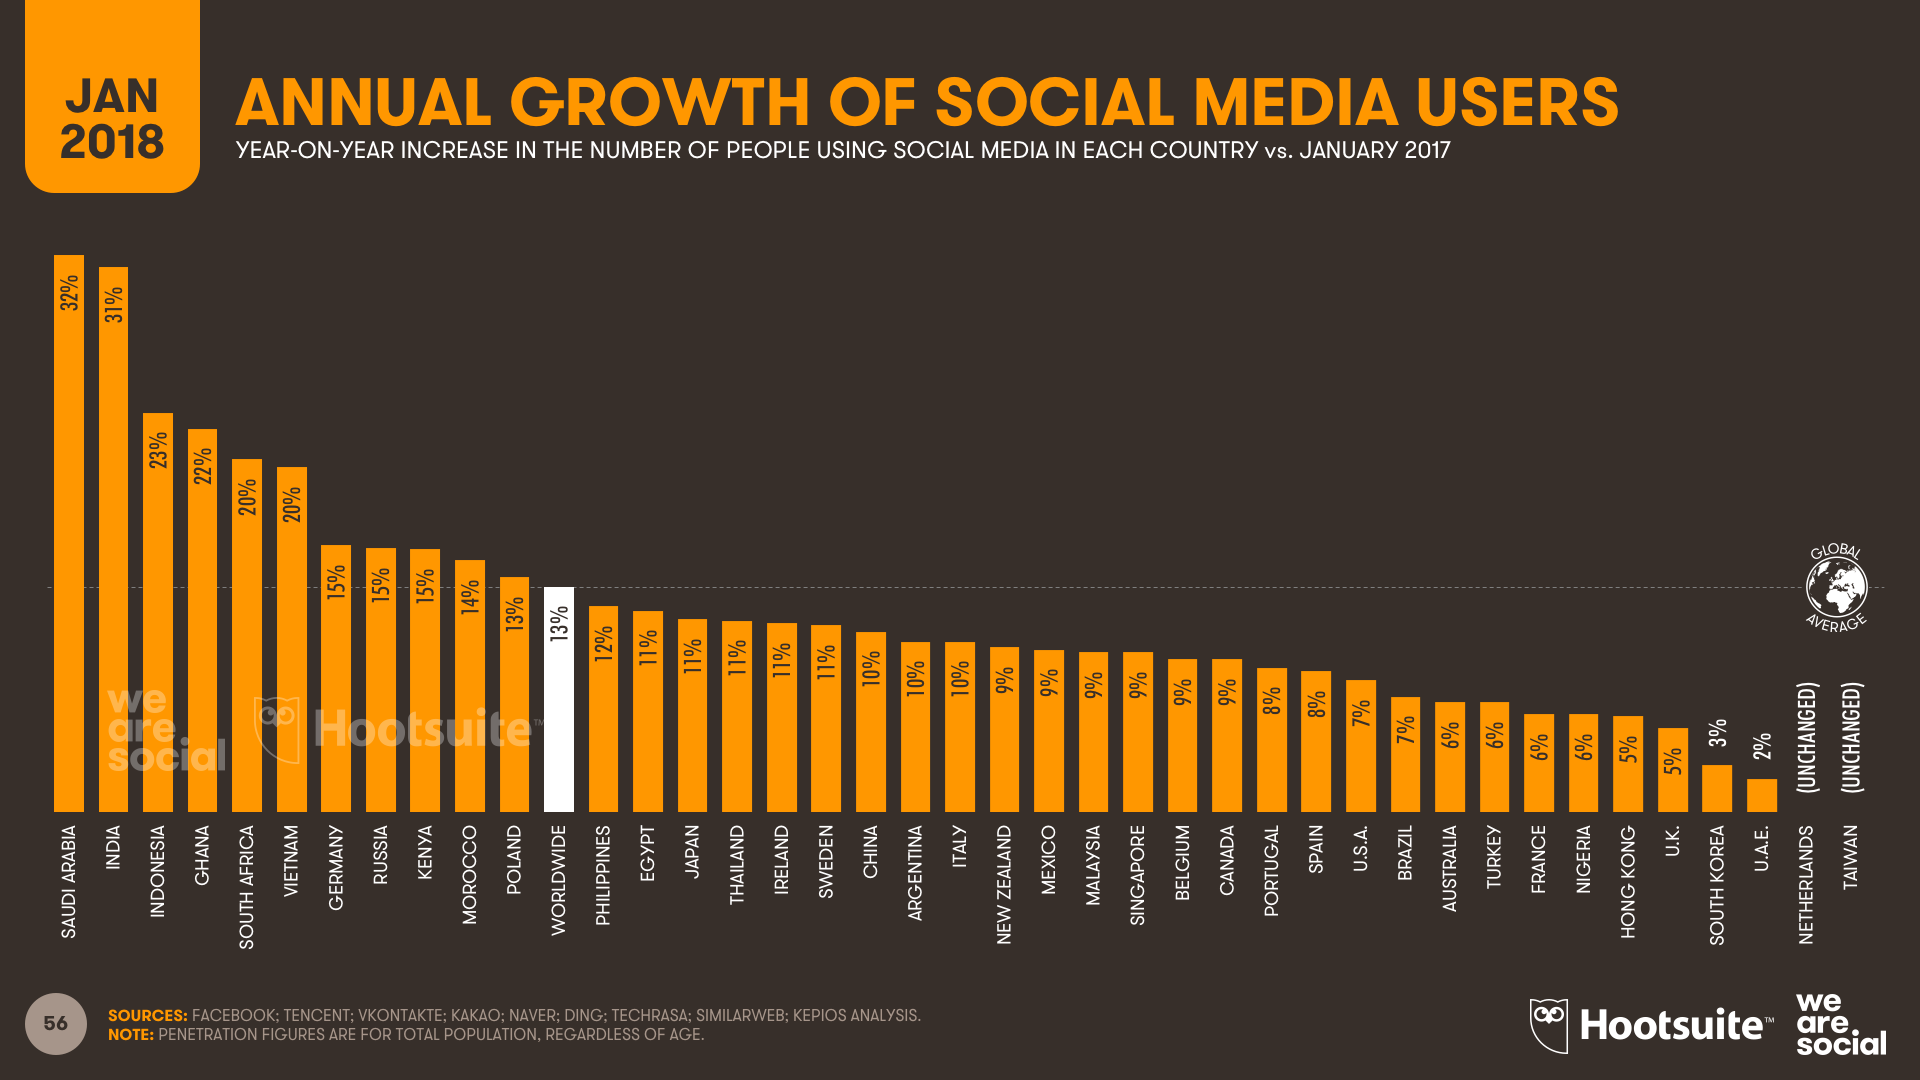 DIGITAL-IN-2018-008-GROWTH-IN-SOCIAL-MEDIA-USERS-V1.00